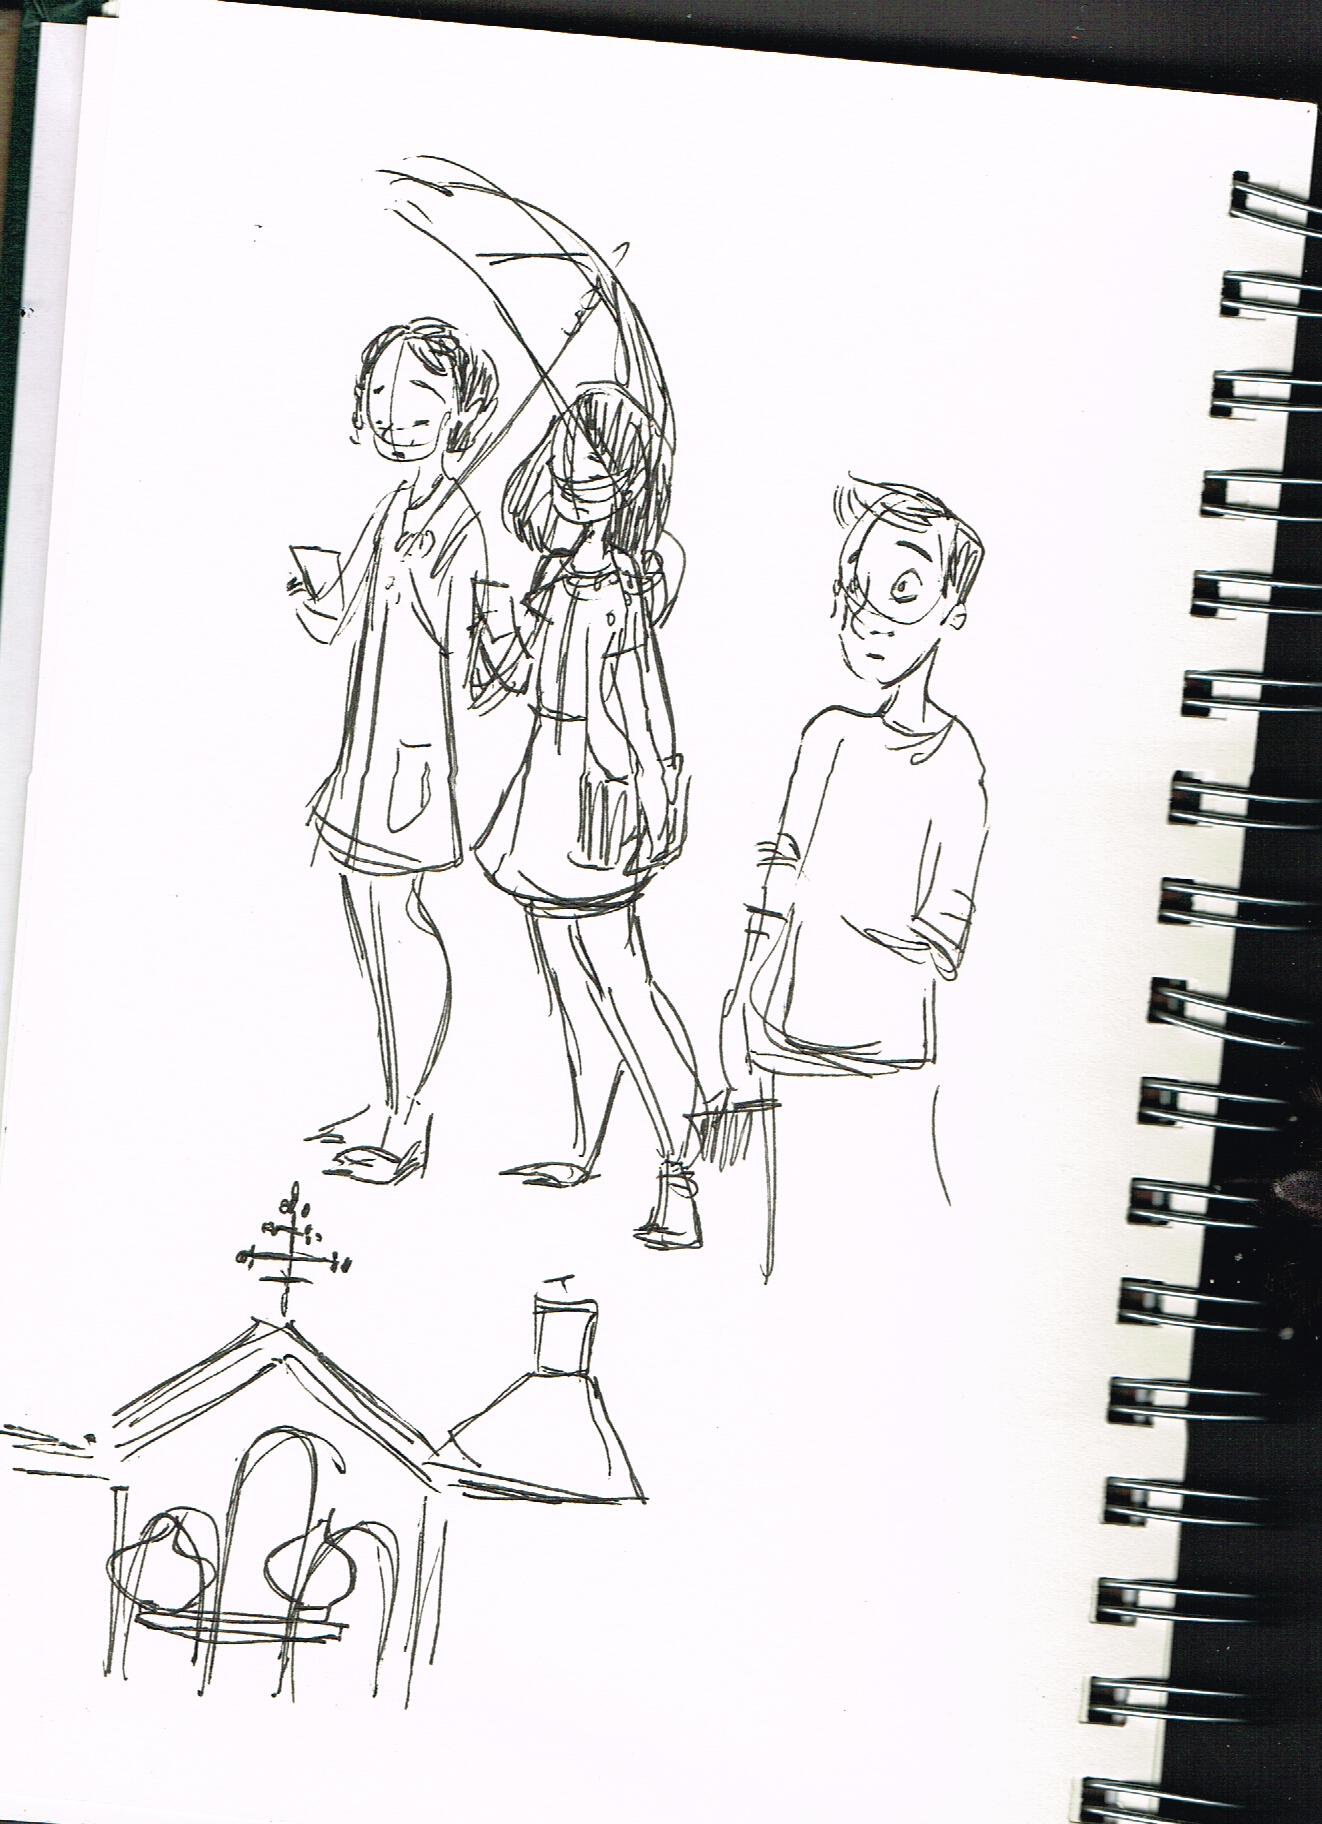 vacation_sketchbook_012.jpg